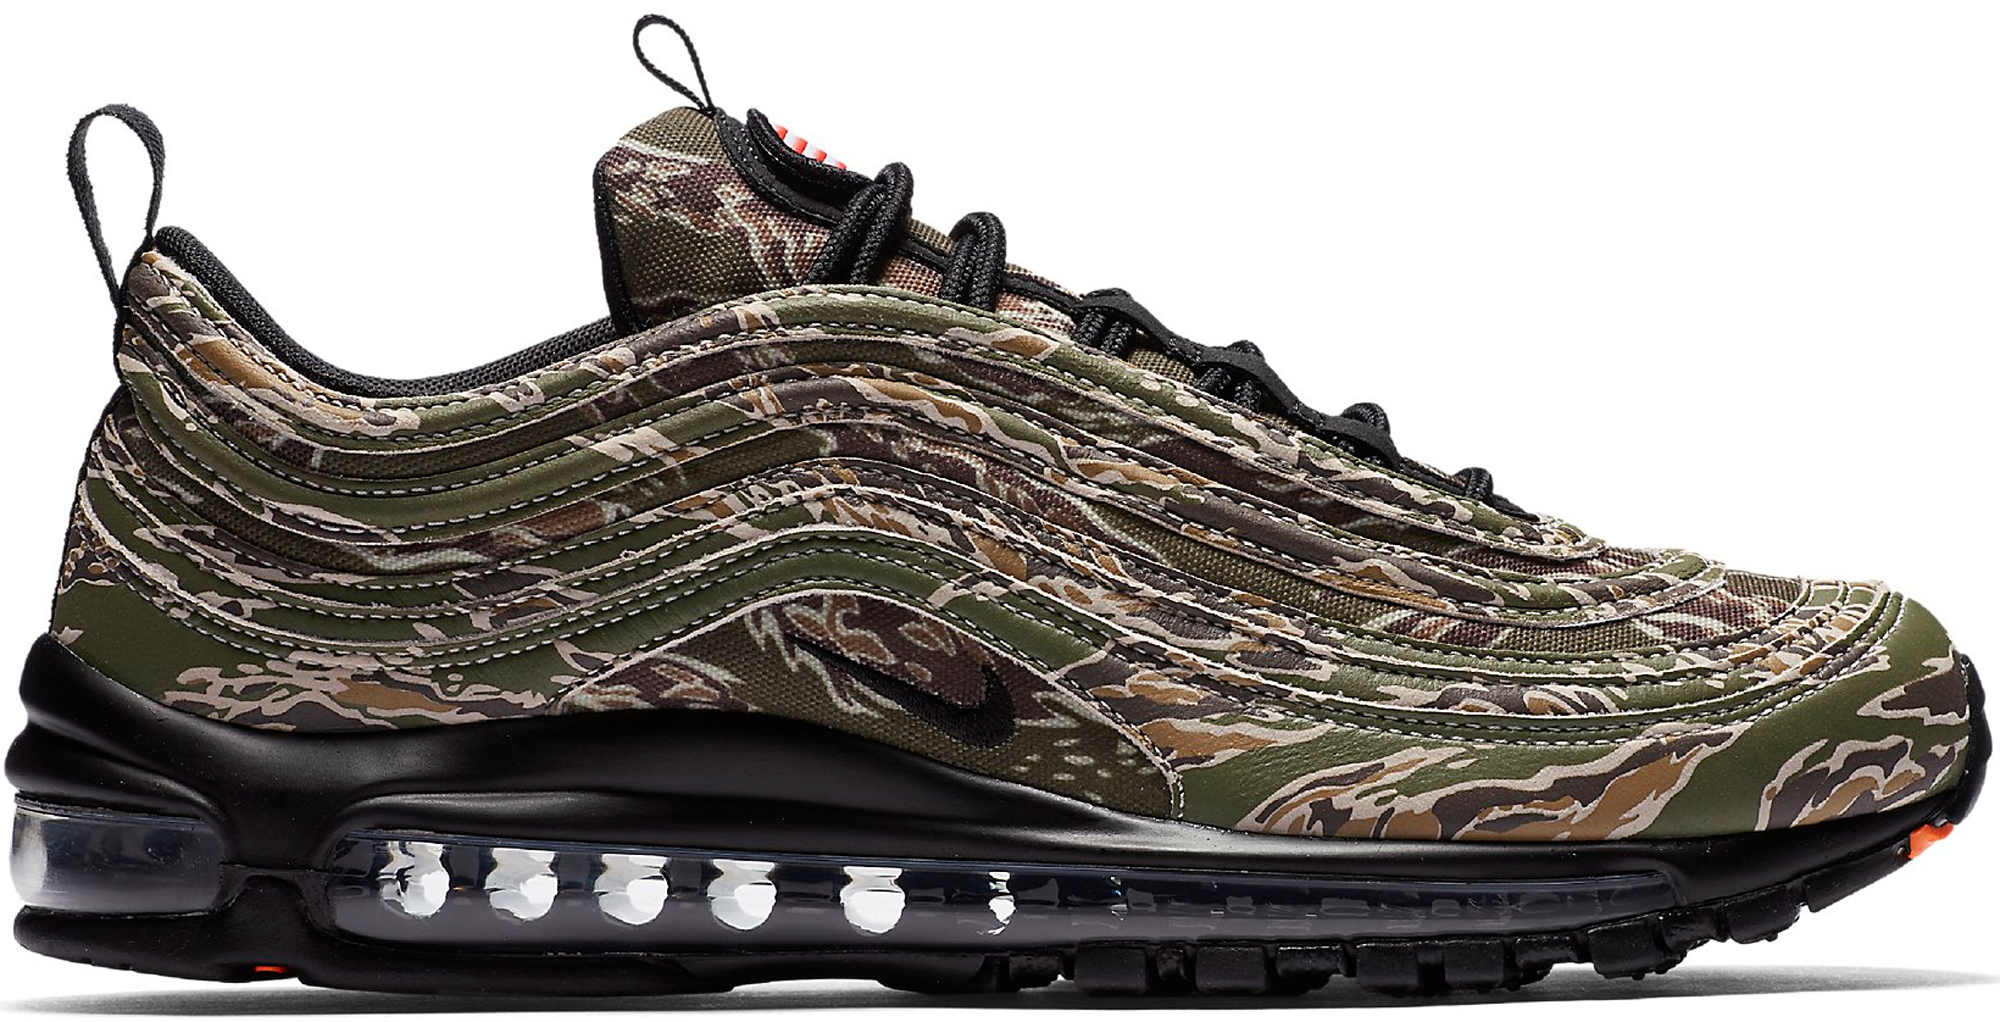 Acheter Nike Air Max 97 Pays Images Camo